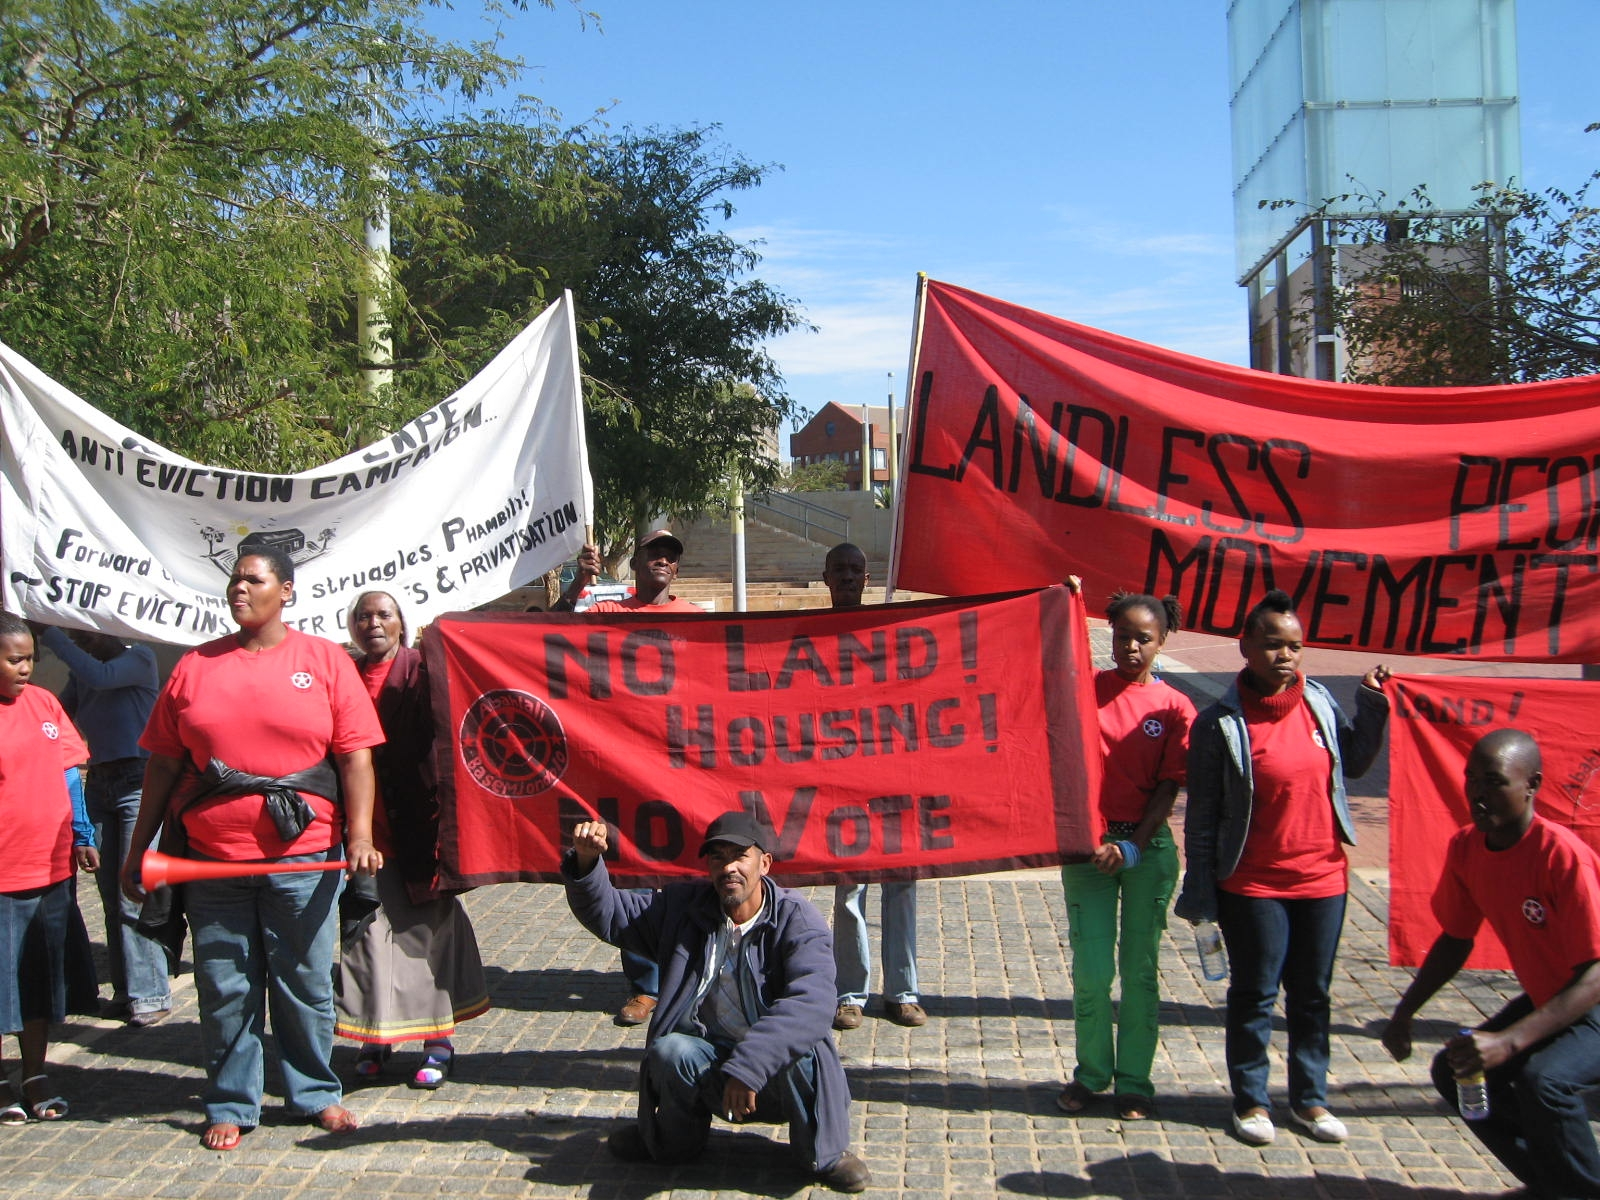 Anti-Eviction Campaign, Abahlali baseMjondolo and Landless Peoples Movement banners outside the Constitutional Court